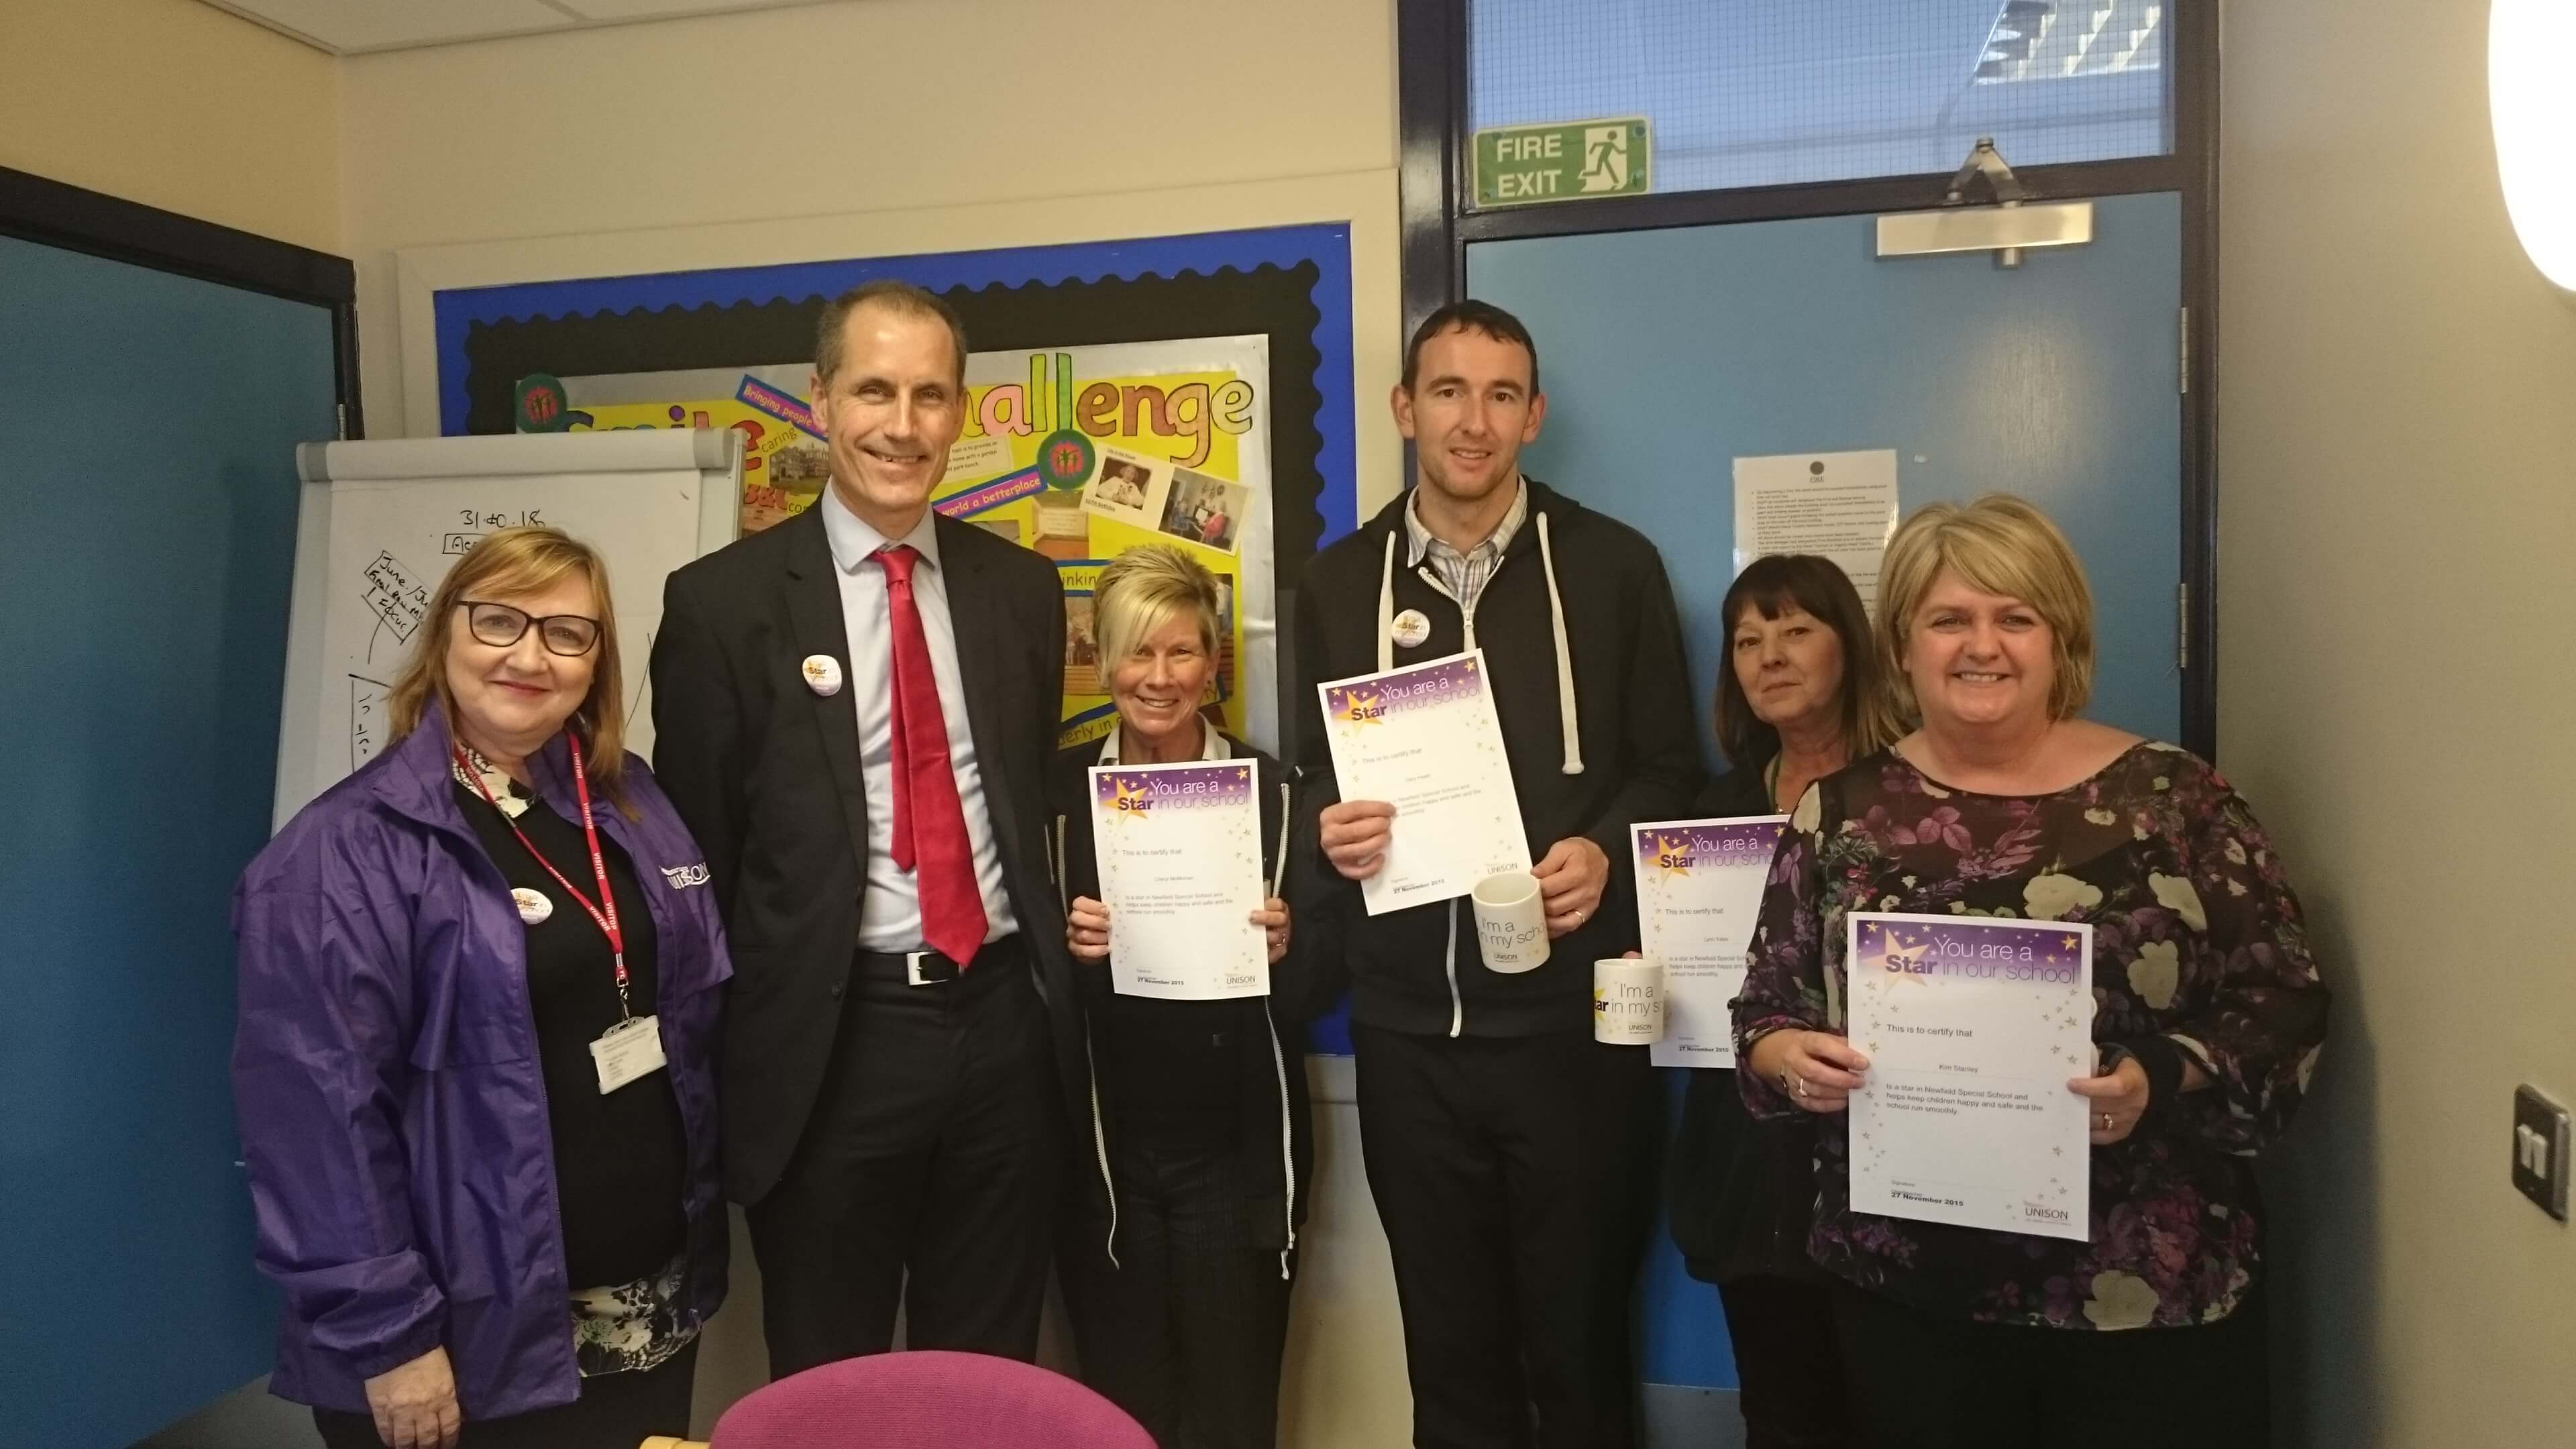 Bill Esterson MP with award winners from Newfield School in Edge Lane, Thornton, Cheryl McMichan, Gary Heath, Lyn Yates, Kim Stanley and UNISON official Jane Evanson